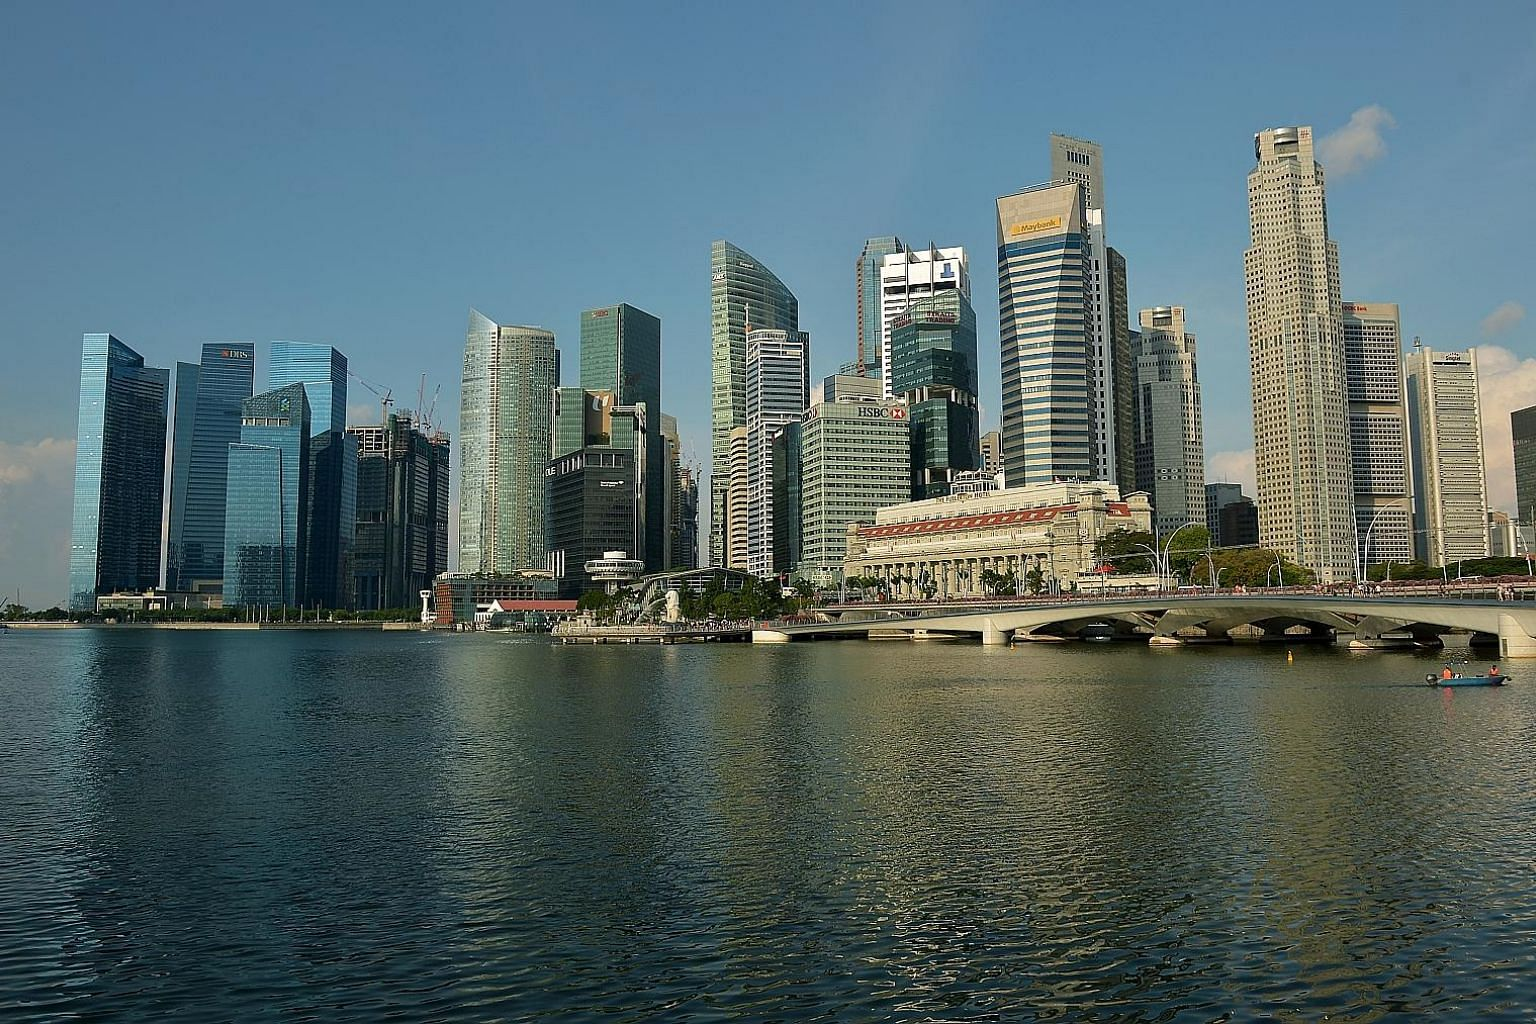 From starting a company to enforcing contracts, Singapore ranks highly against other economies, with the World Bank naming it as the second best country in the world to do business.